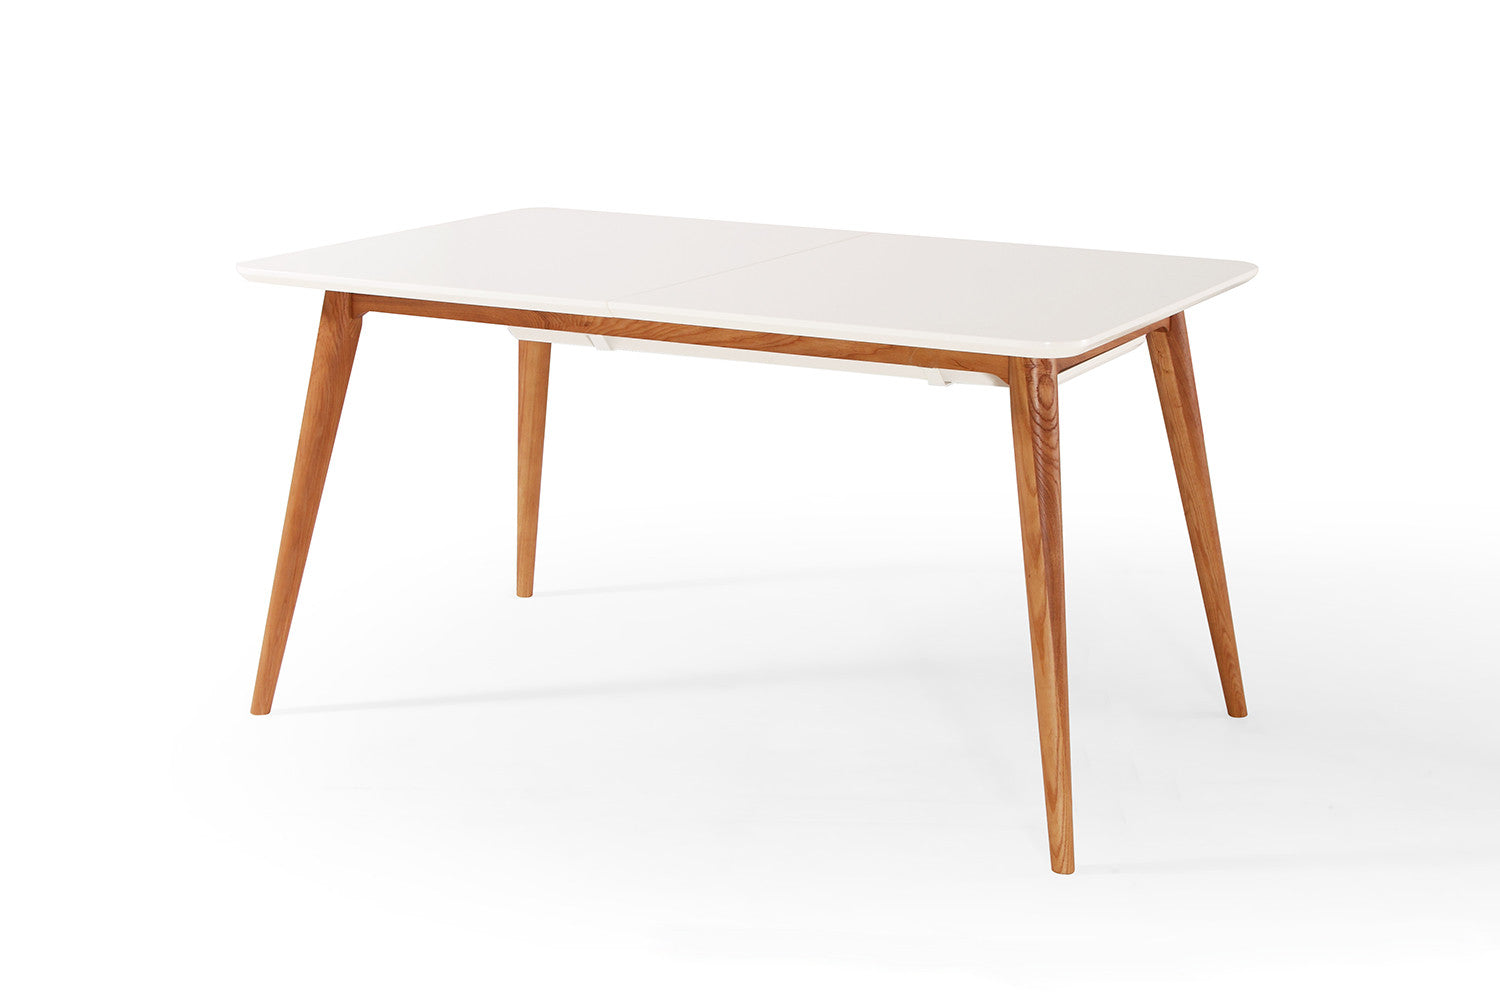 Table de salle manger extensible scandinave wyna dewarens Table salle a manger rectangulaire extensible